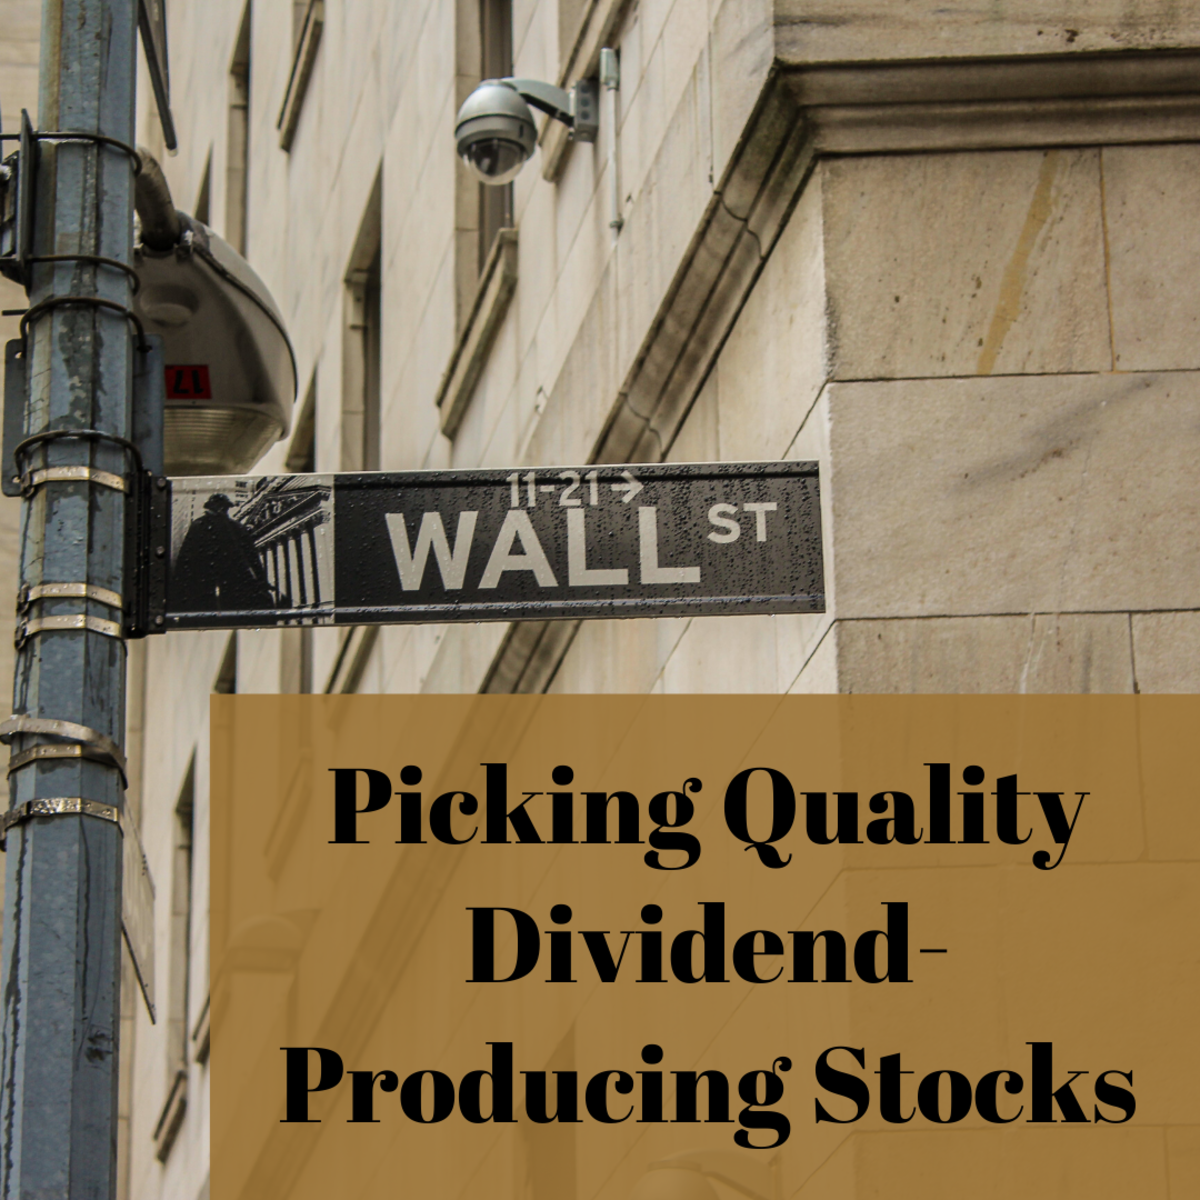 Tips for Picking Quality Dividend-Producing Stocks